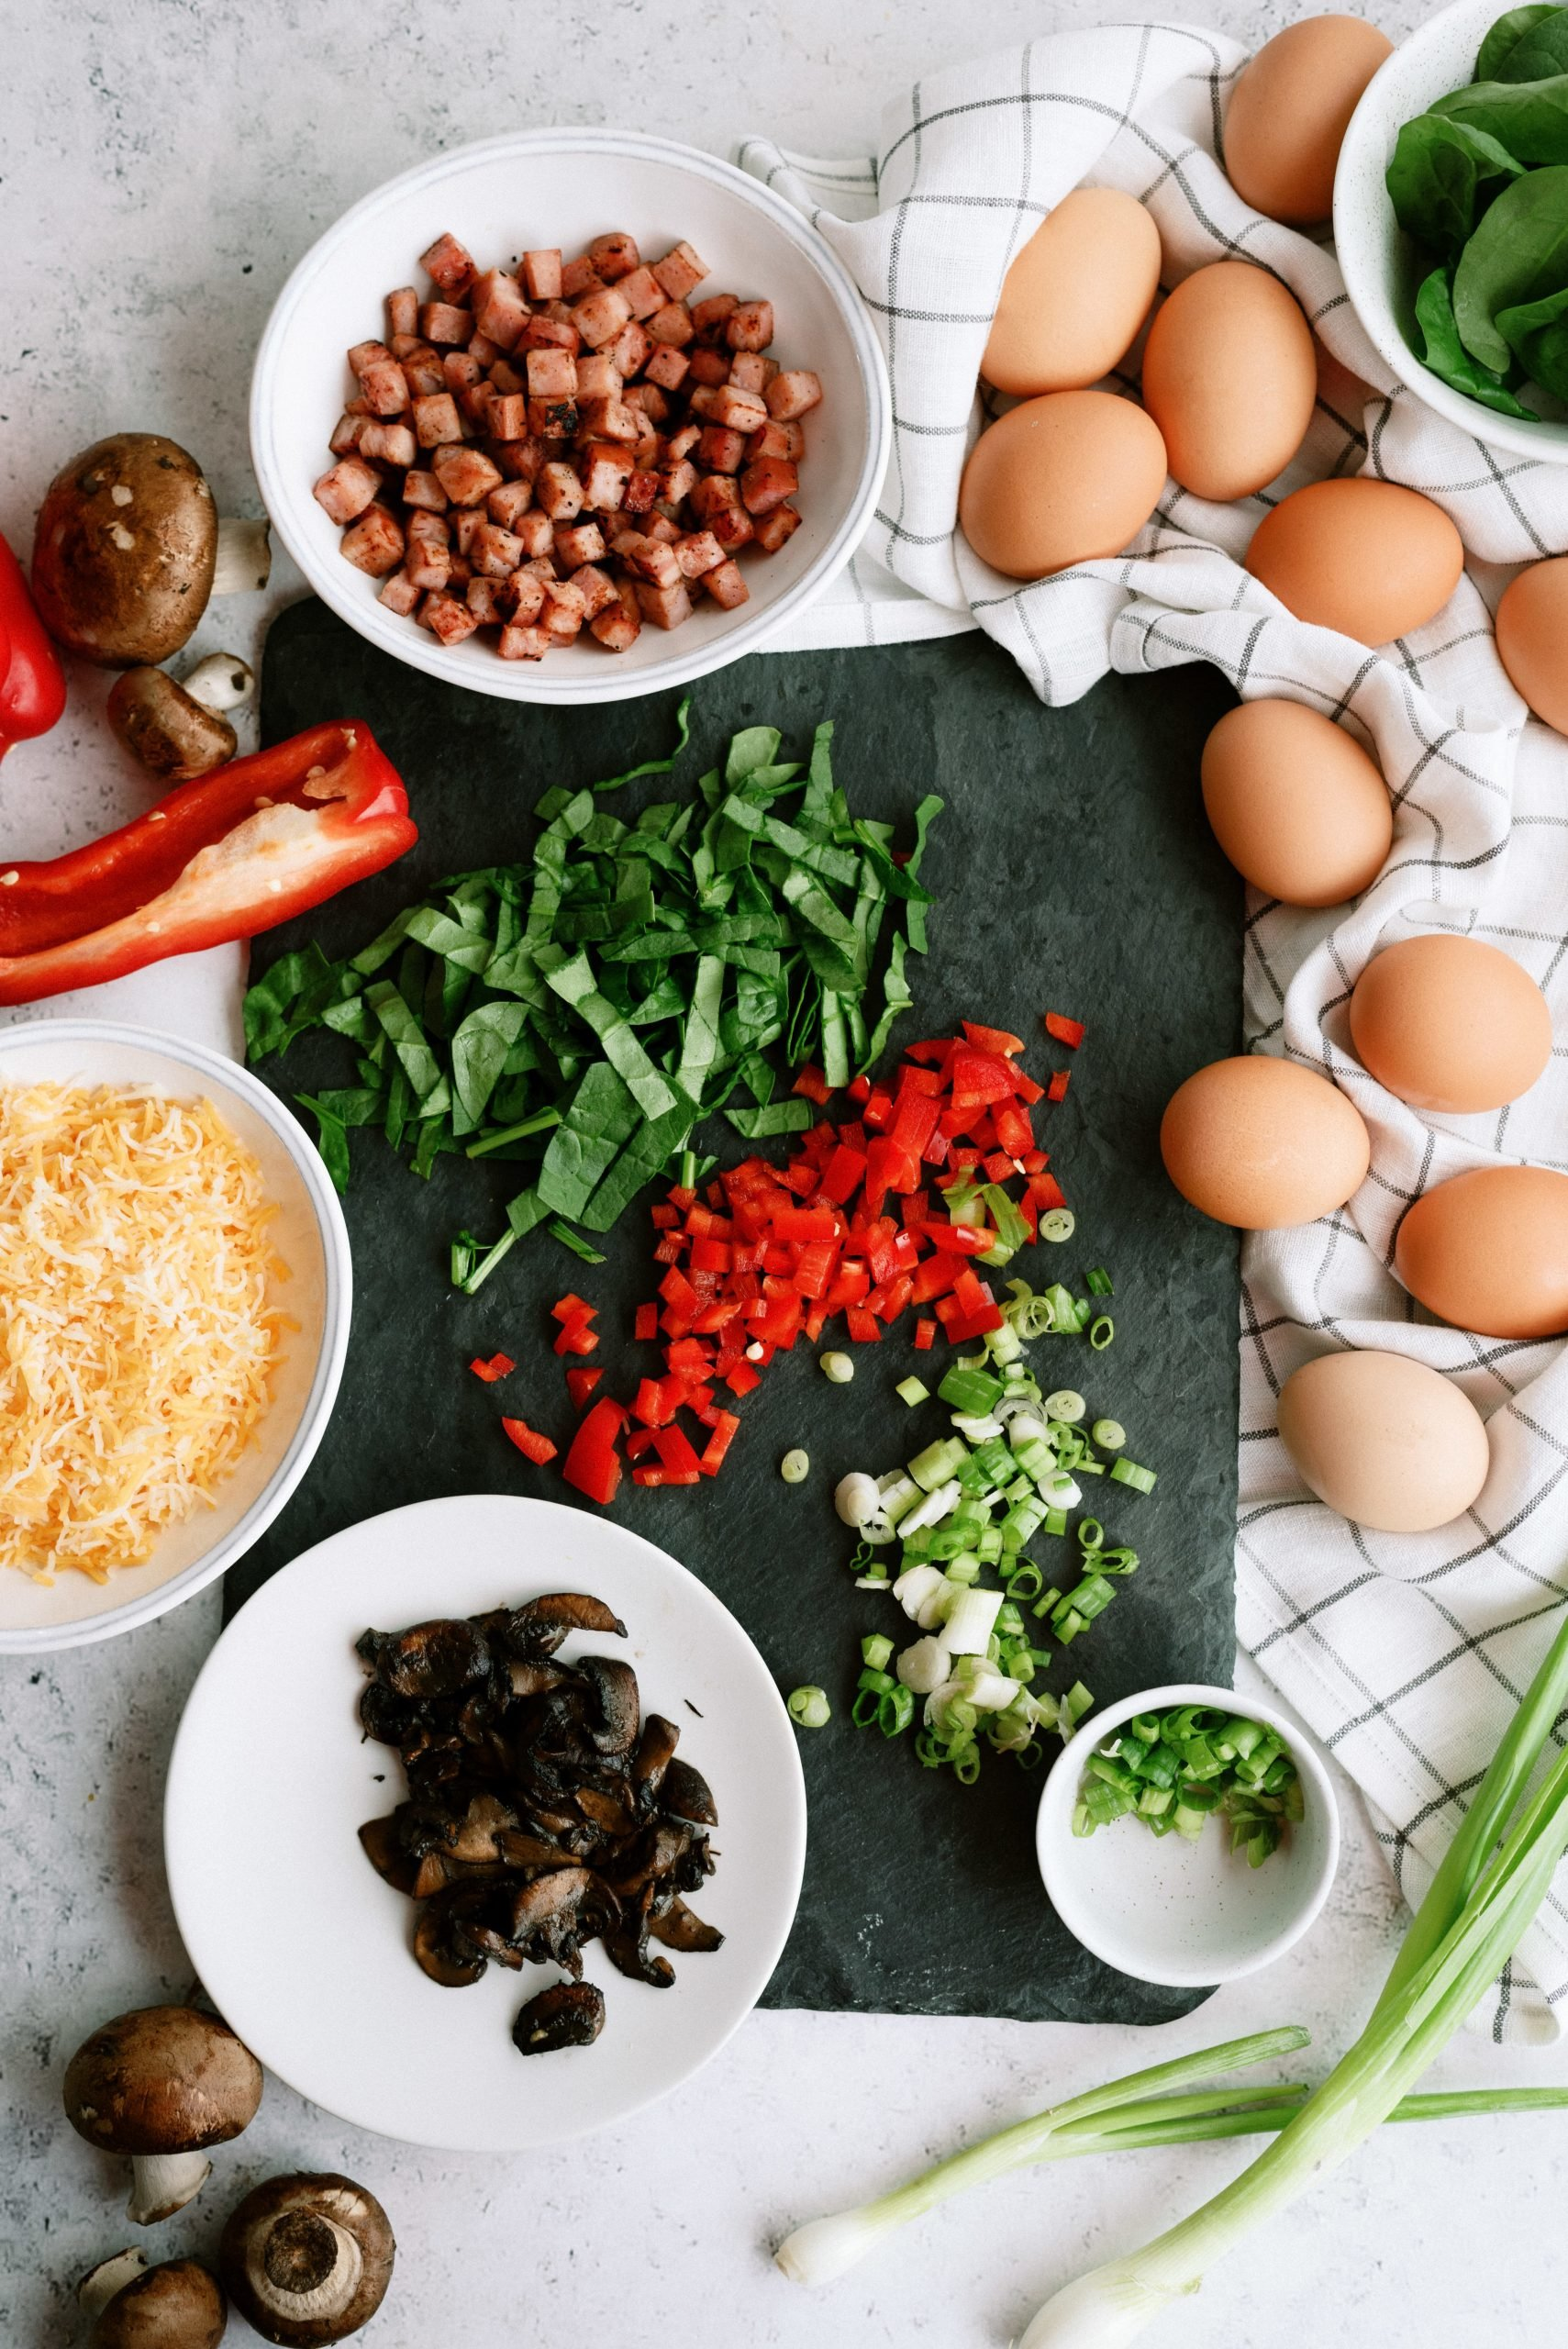 Chopped ingredients for scrambled egg breakfast muffins - ham, pepper, eggs, onion, mushrooms, spinach, and cheese